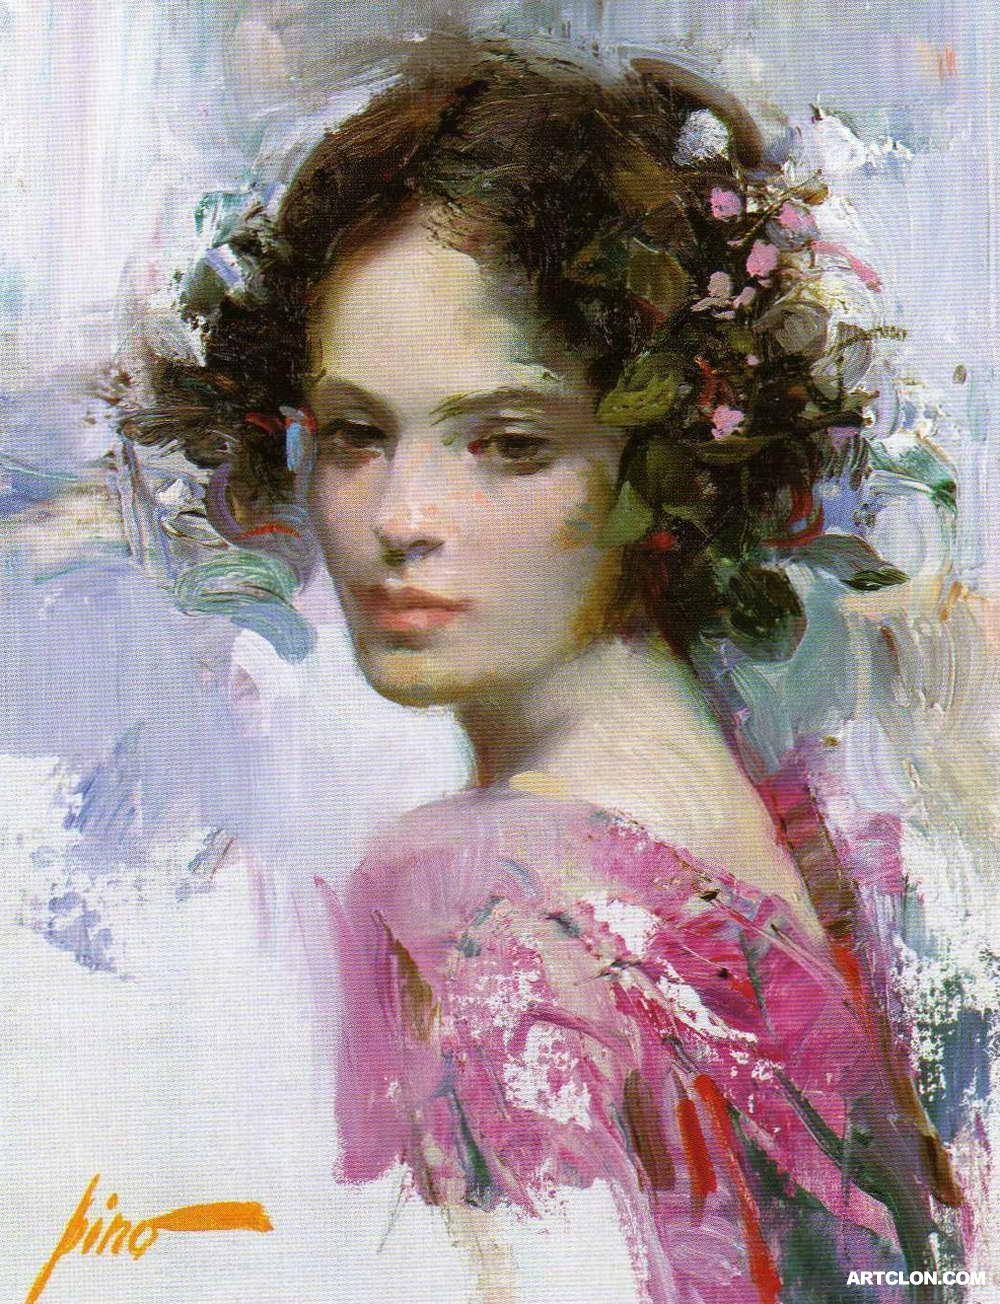 Pino Daeni paintings, Reproductions of Pino Daeni's artwork